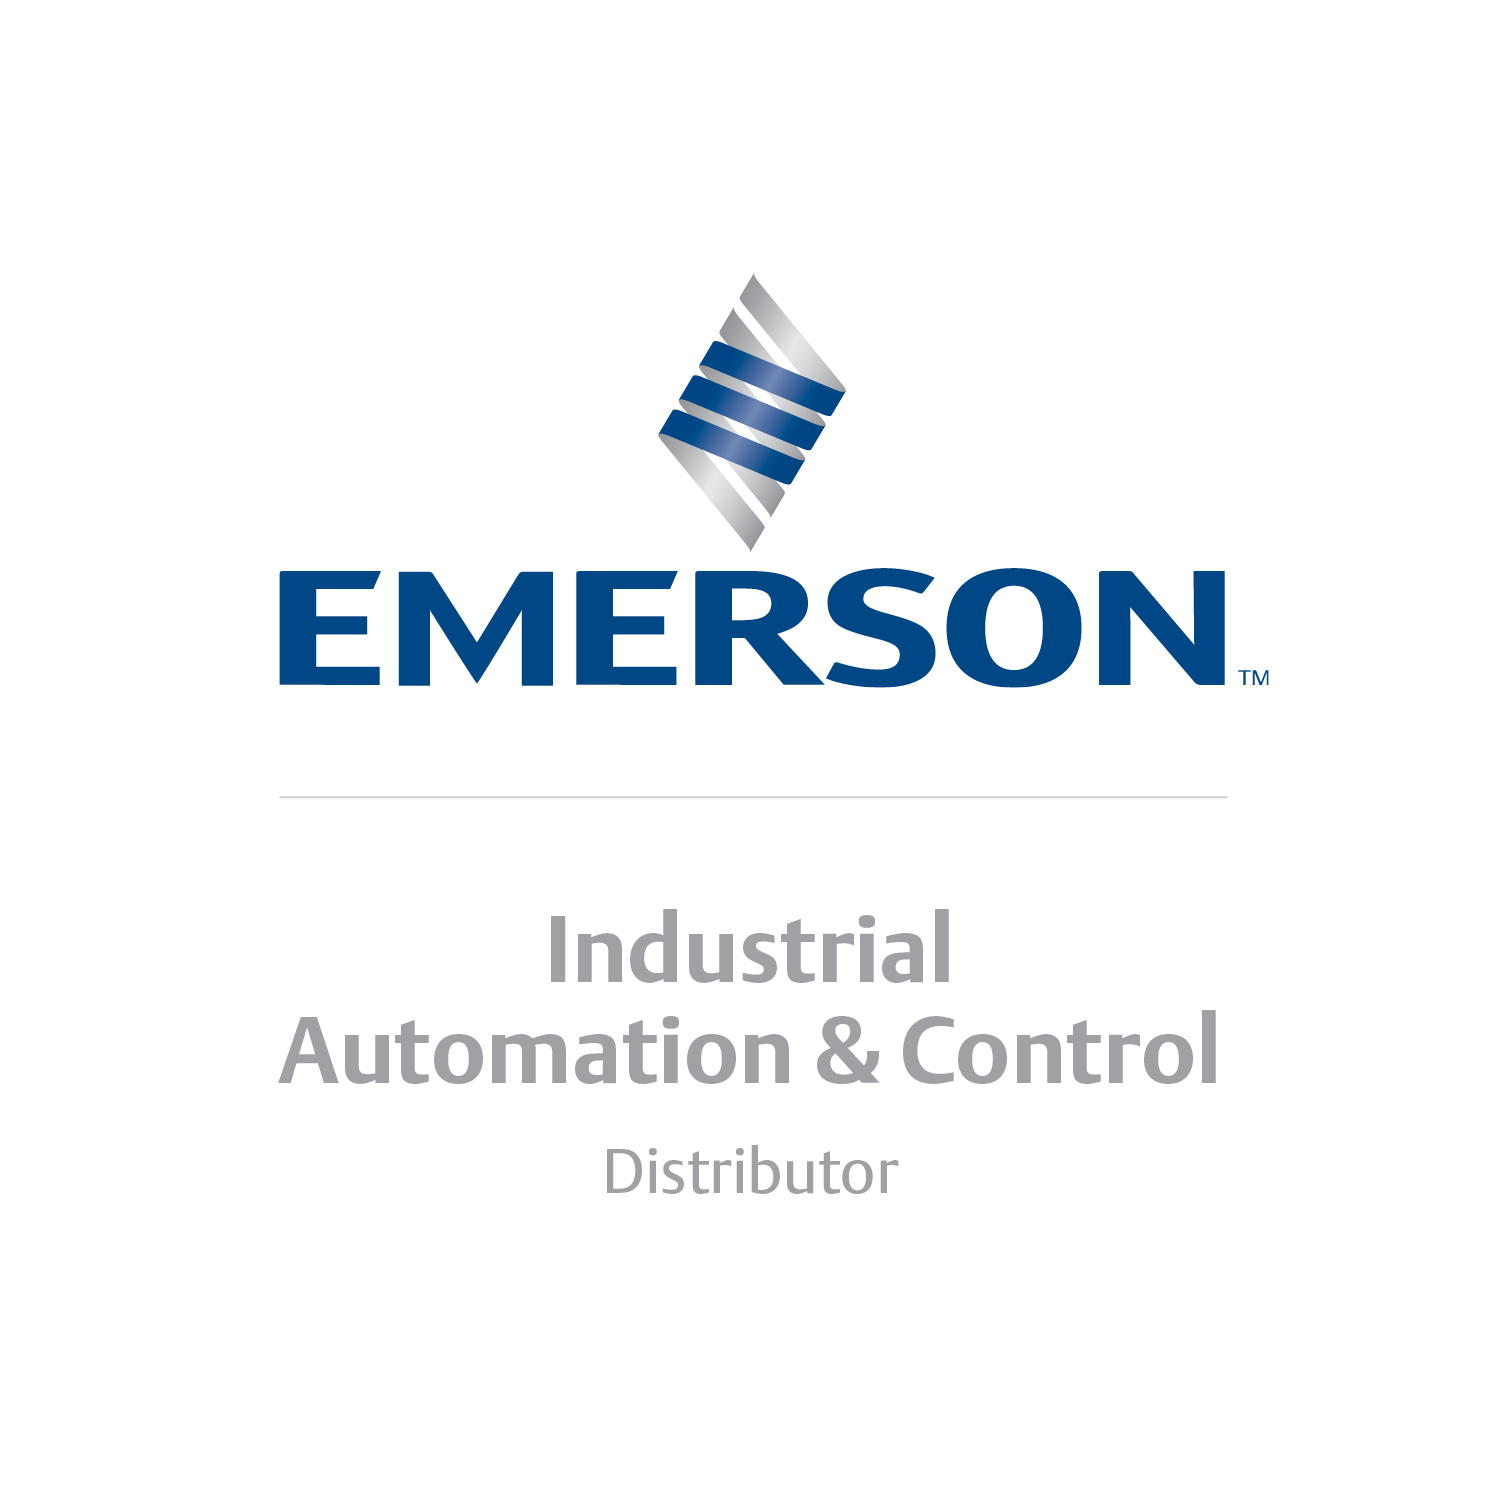 EmersonLogo IndustrialAutomation stack1